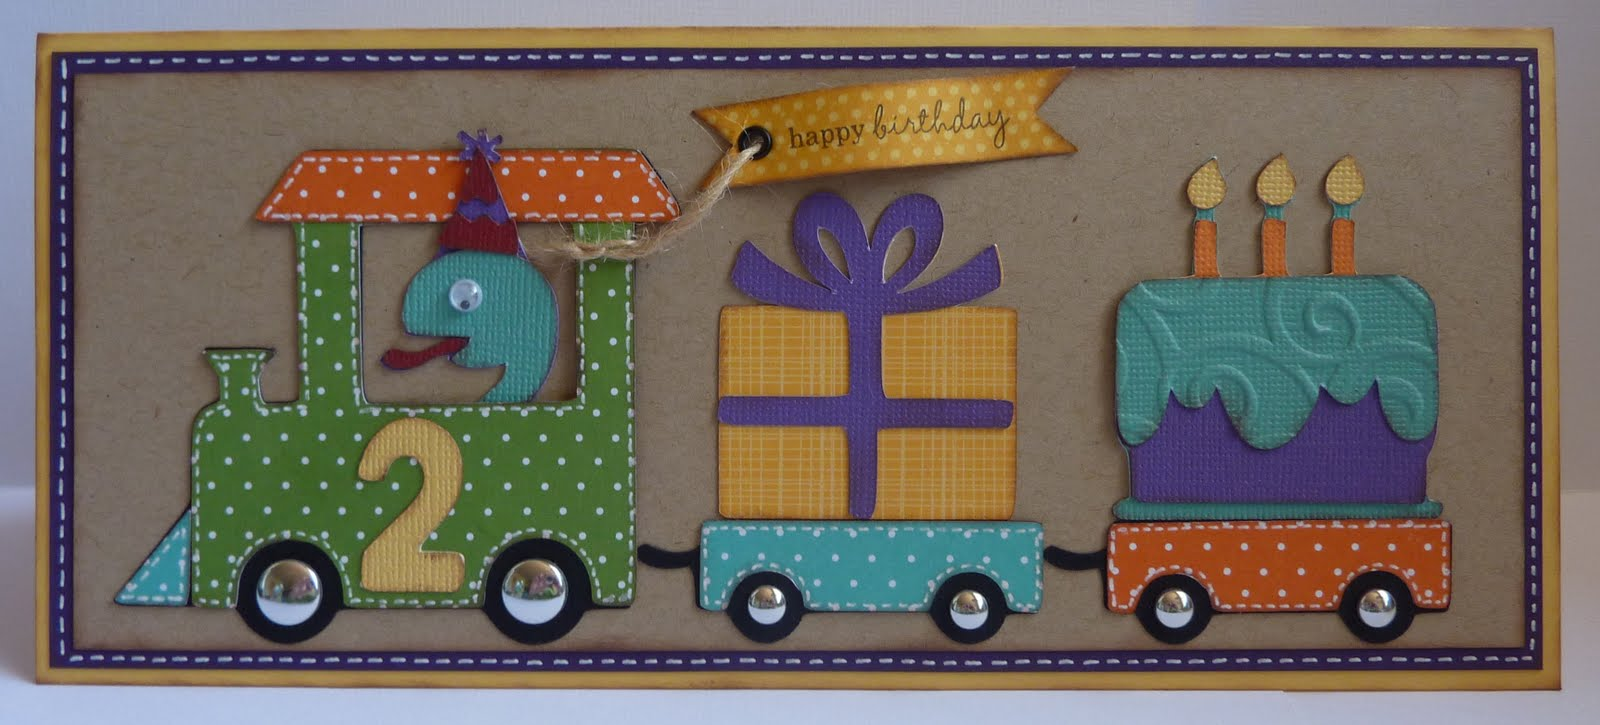 crafting with katie PopUp Train Birthday Card – Train Birthday Cards